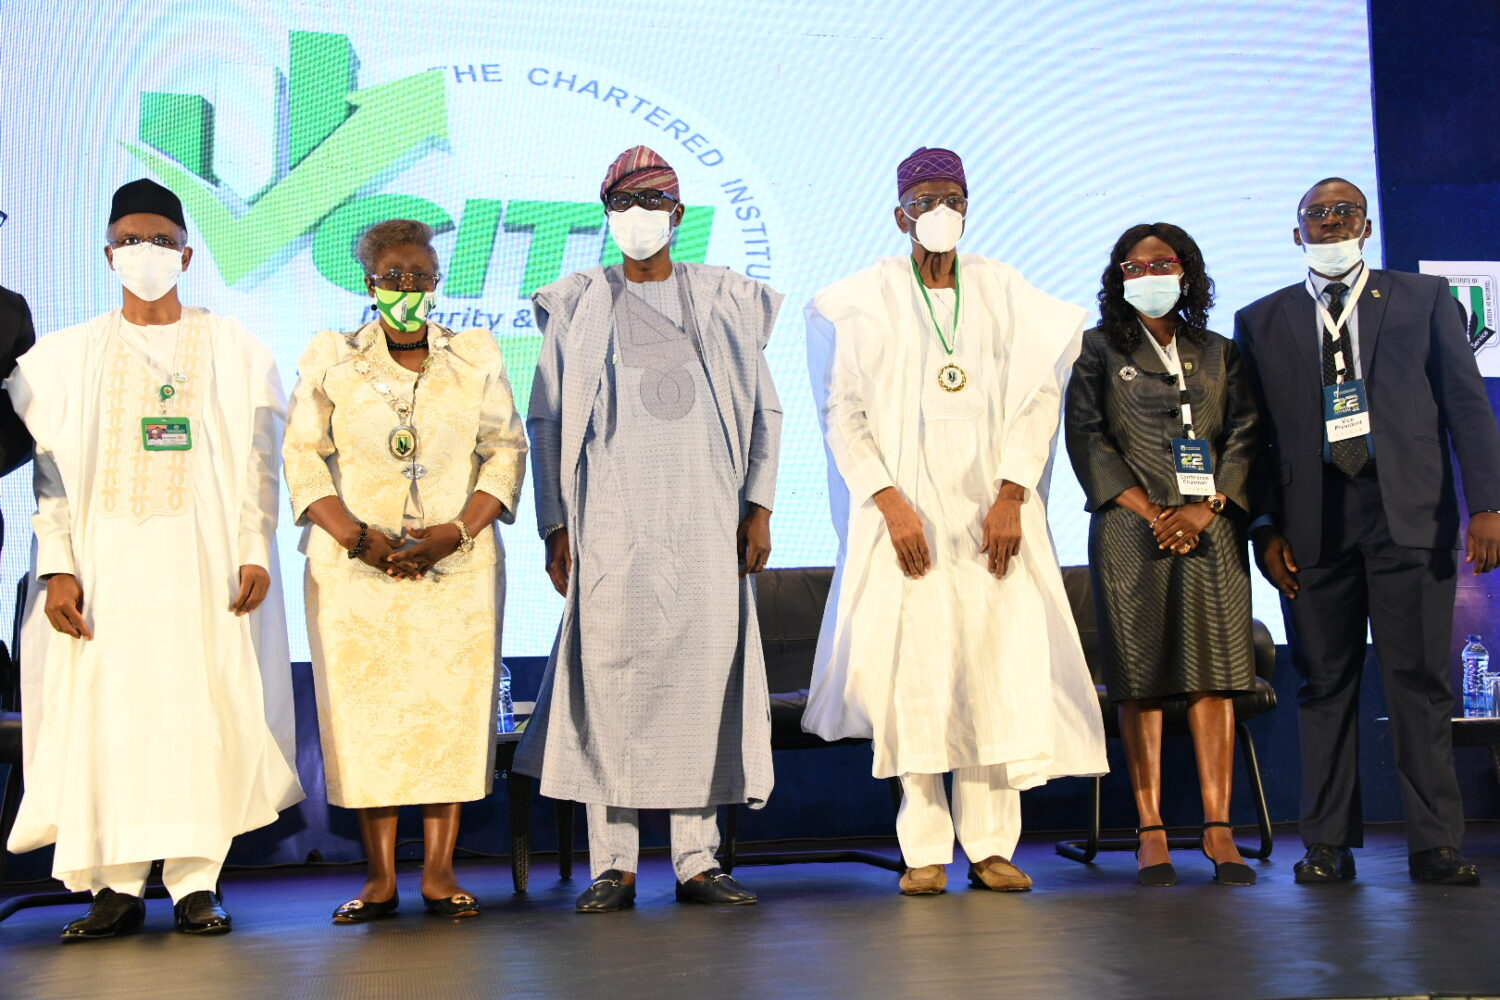 R-L: Kaduna State Governor, Mallam Nasir El-Rufai; his Lagos State Counterpart, Mr. Babajide Sanwo-Olu; The Doyen of Taxation in Nigeria, Chief David Olorunleke and President/Chairman, Chartered Institute of Taxation Of Nigeria (CITN), Dame Gladys Olajumoke Simplice, during the 22nd Annual Tax Conference of the Chartered Institute of Taxation Of Nigeria (CITN) at Eko Hotel & Suites, Victoria Island on Thursday, November 5, 2020.